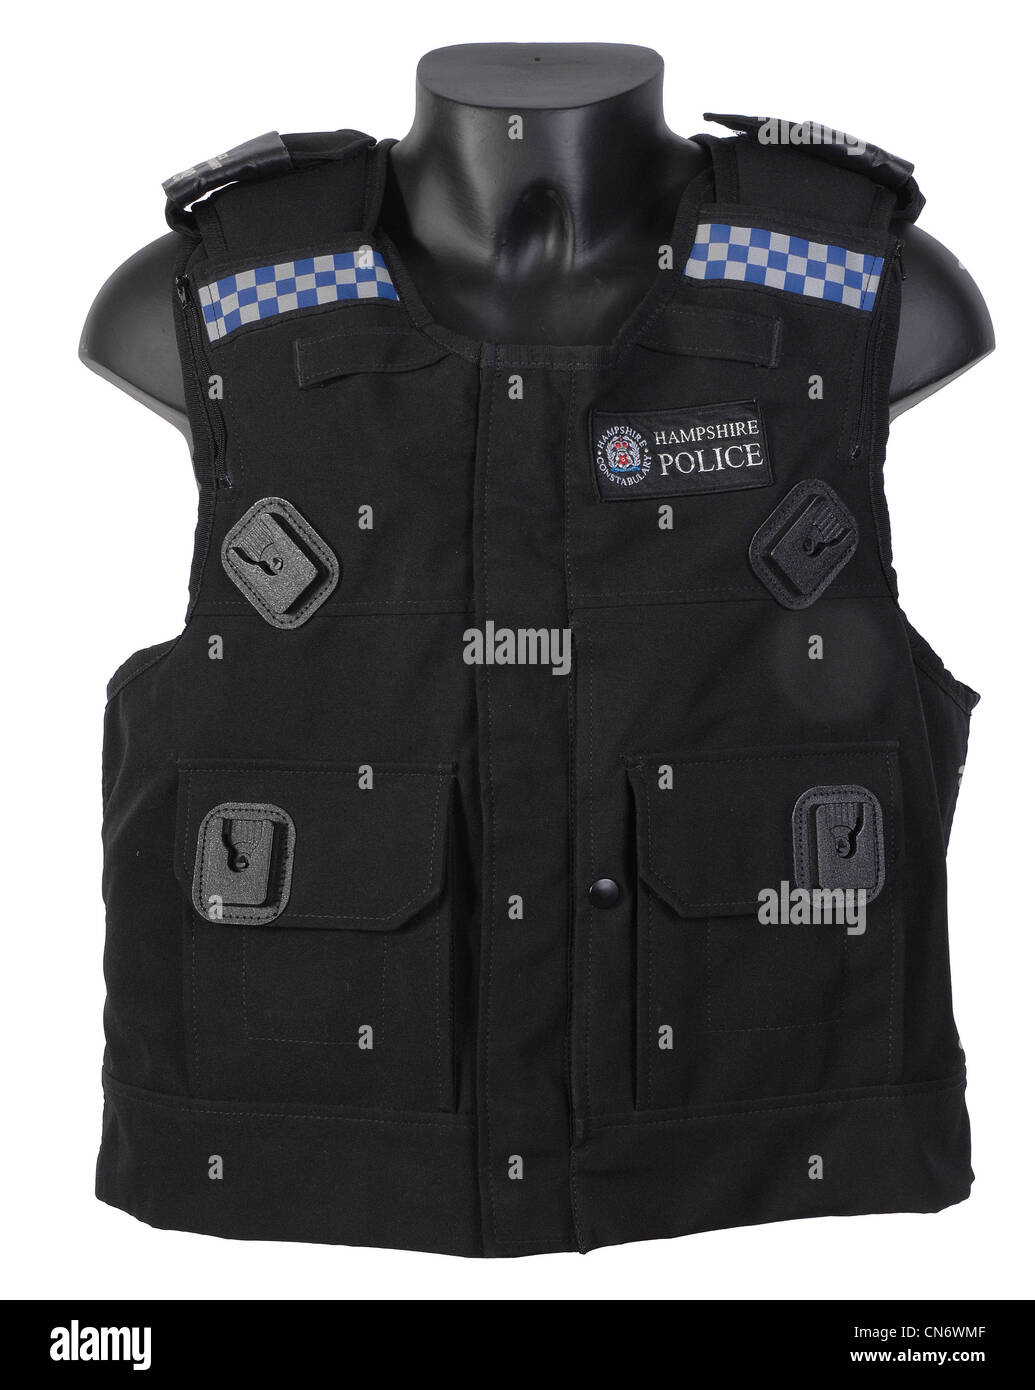 British police issue body armor - Stock Image